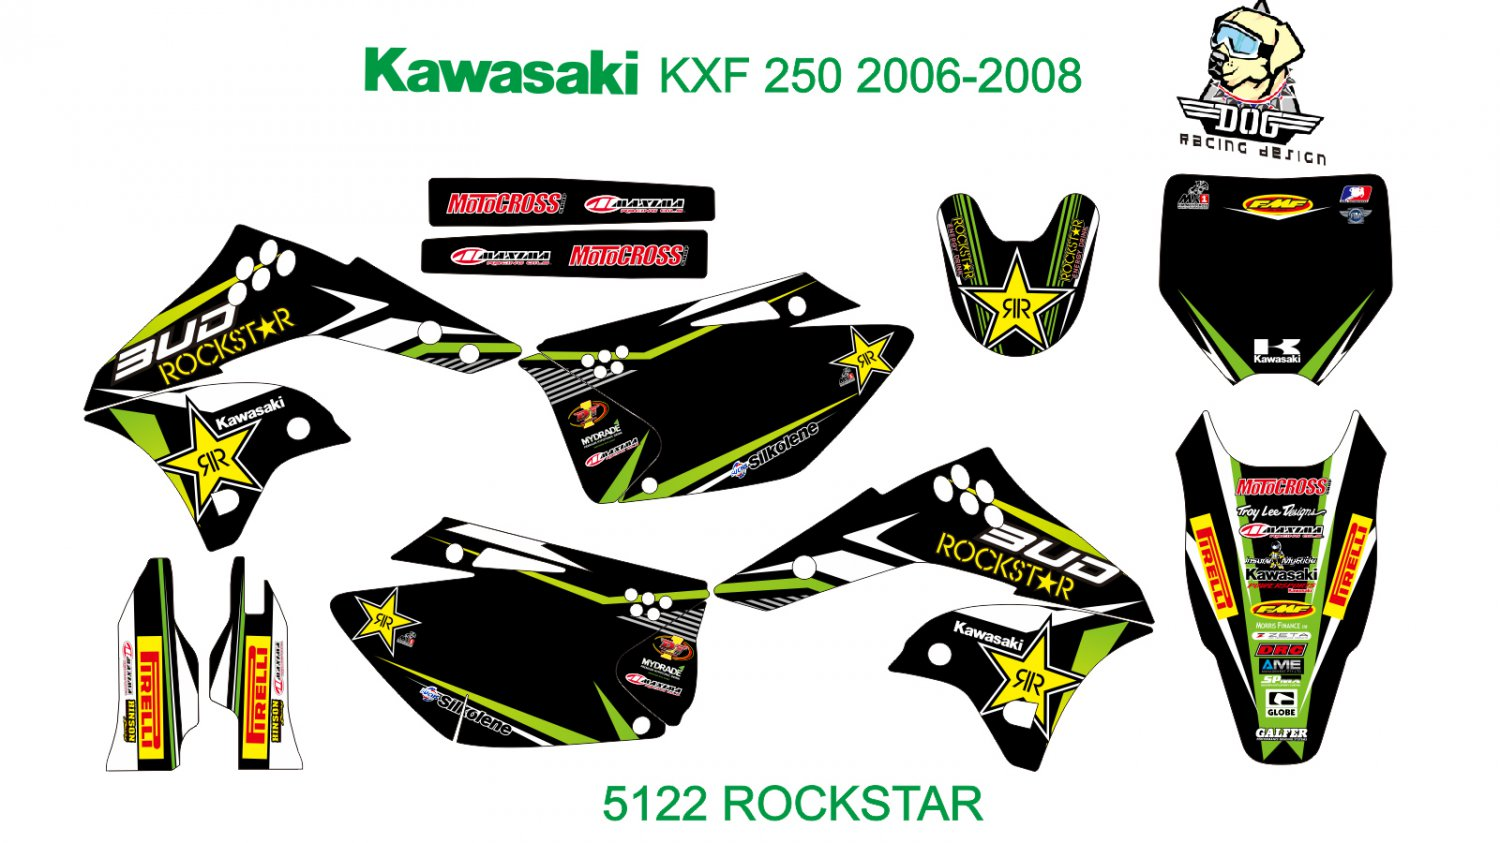 KAWASAKI KXF 250 2006-2008 GRAPHIC DECAL KIT CODE.5122